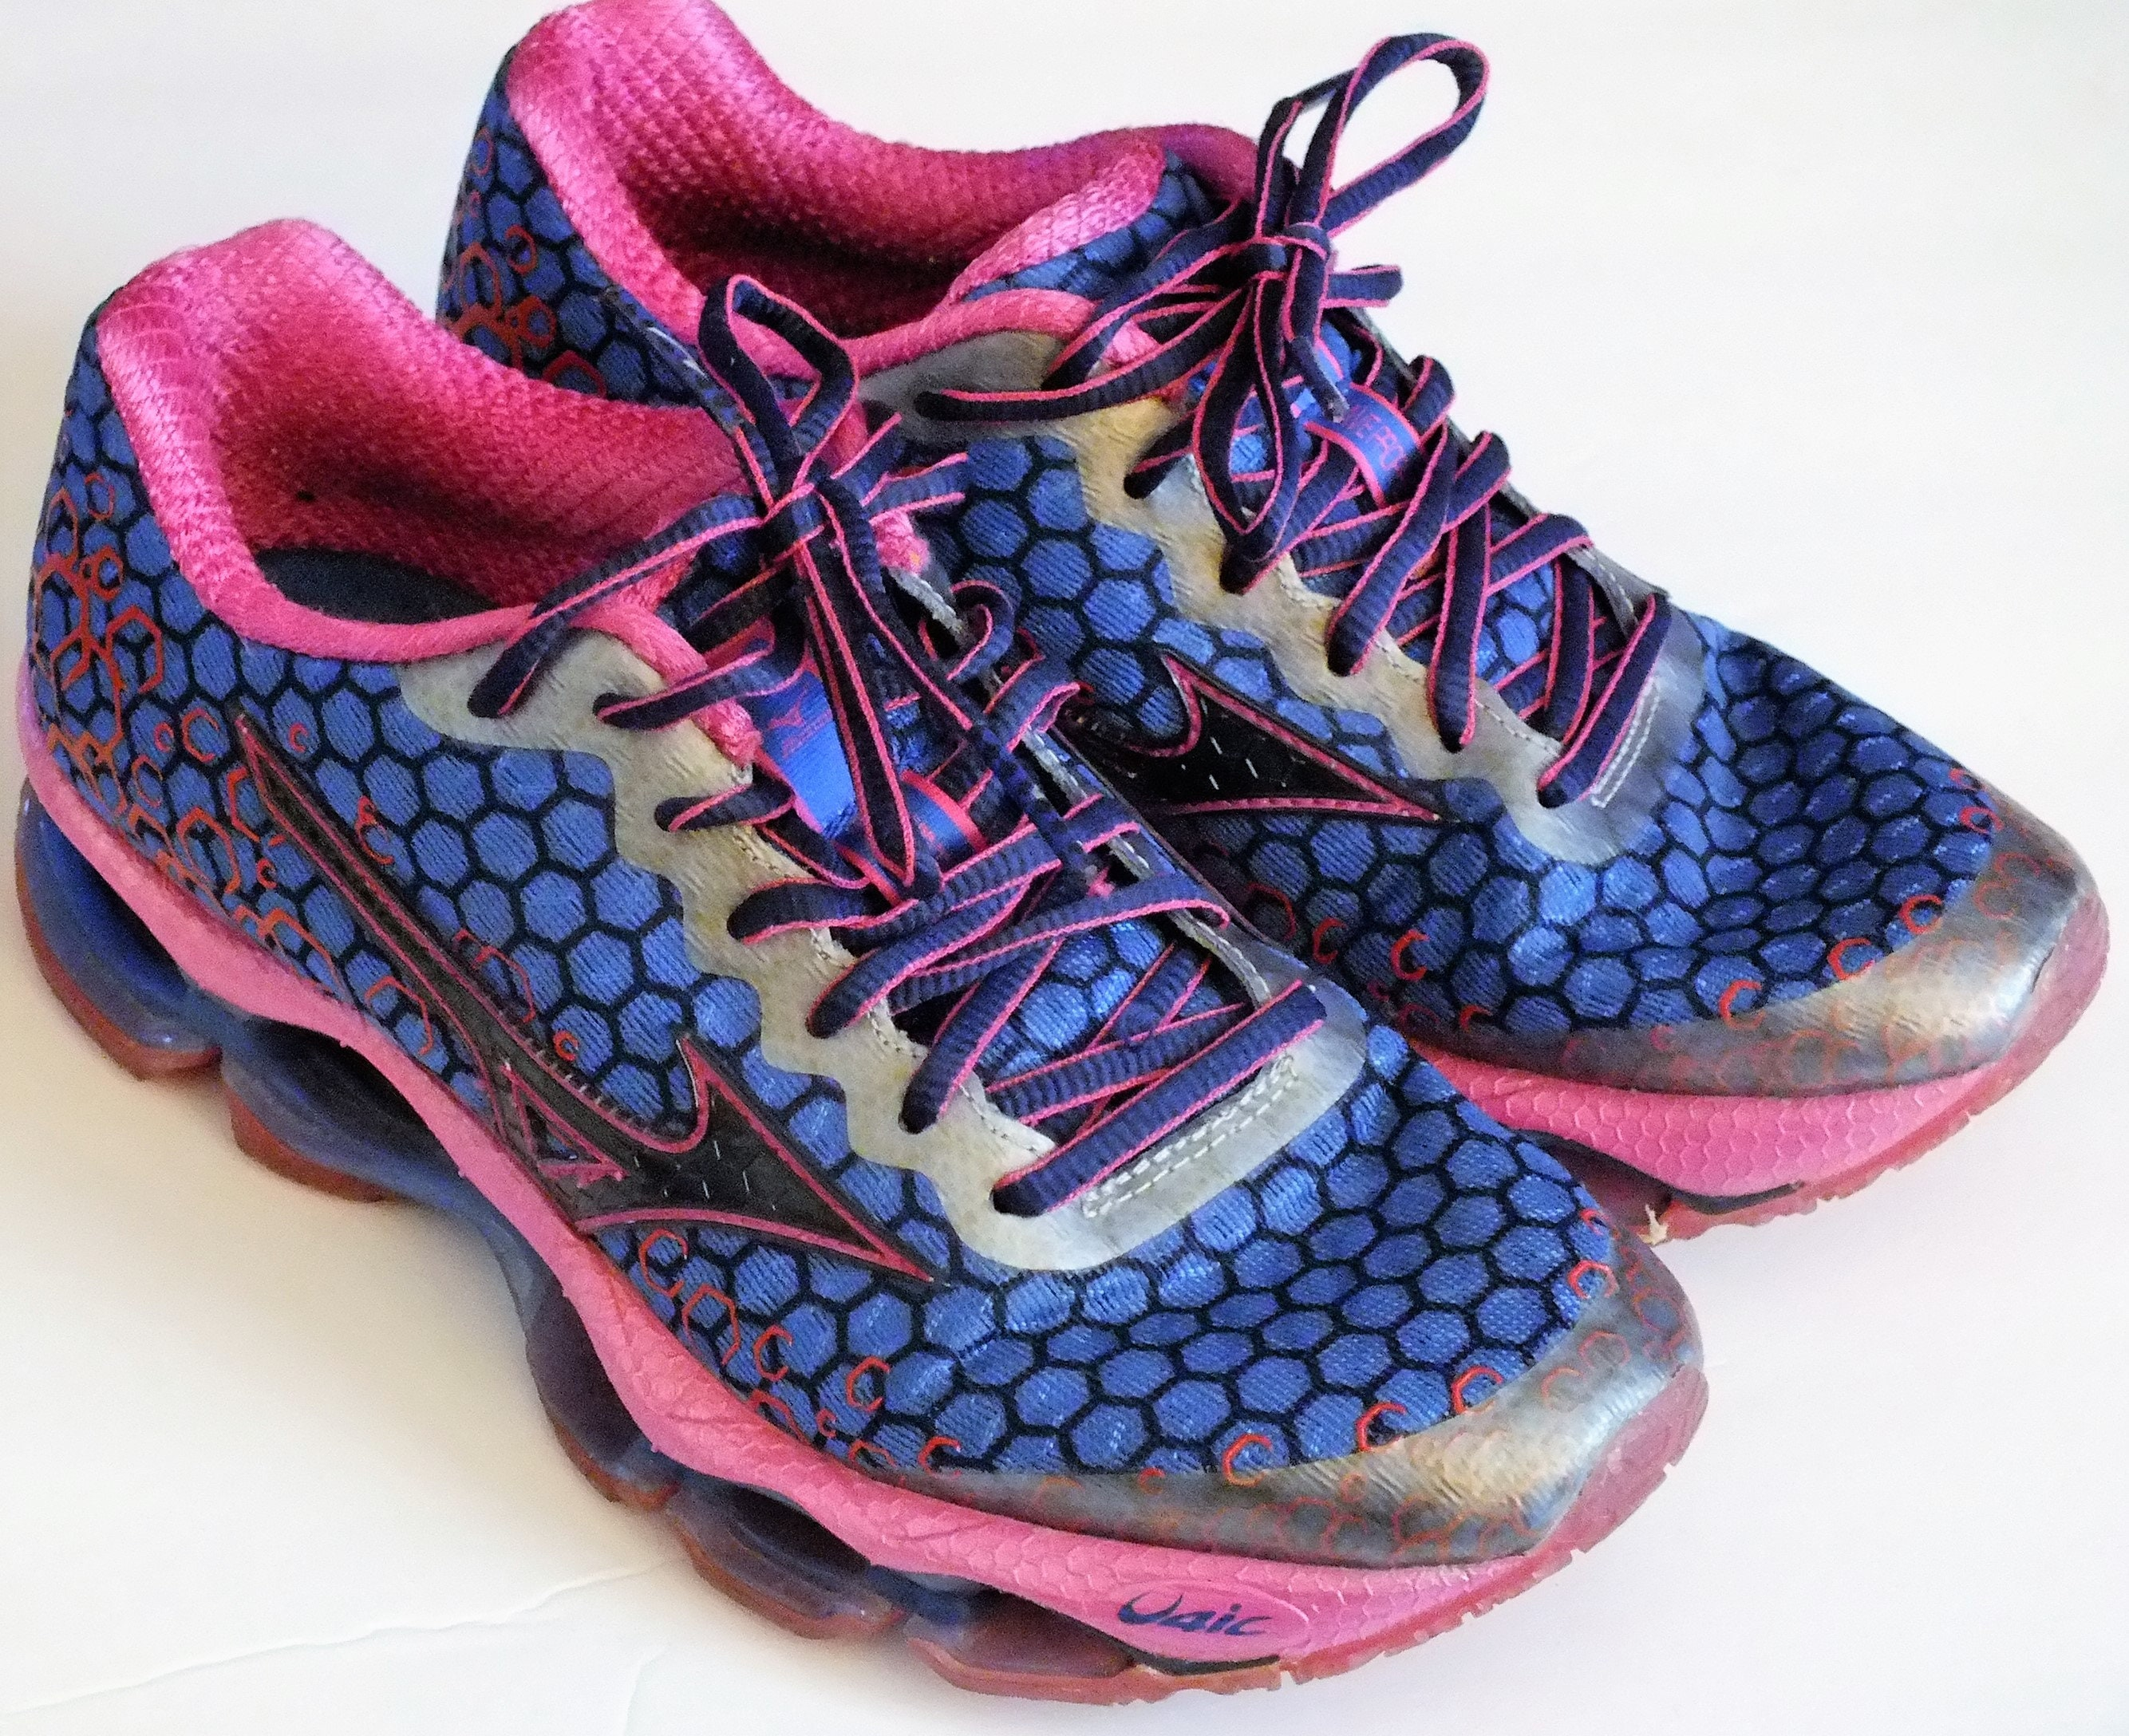 buy popular 793e6 7084a ... 3 running shoes8 blue and pink women size 6.5 w 0afaf b6657 australia womens  mizuno depths wave prophecy 3 running shoes dew performance honey purple ...